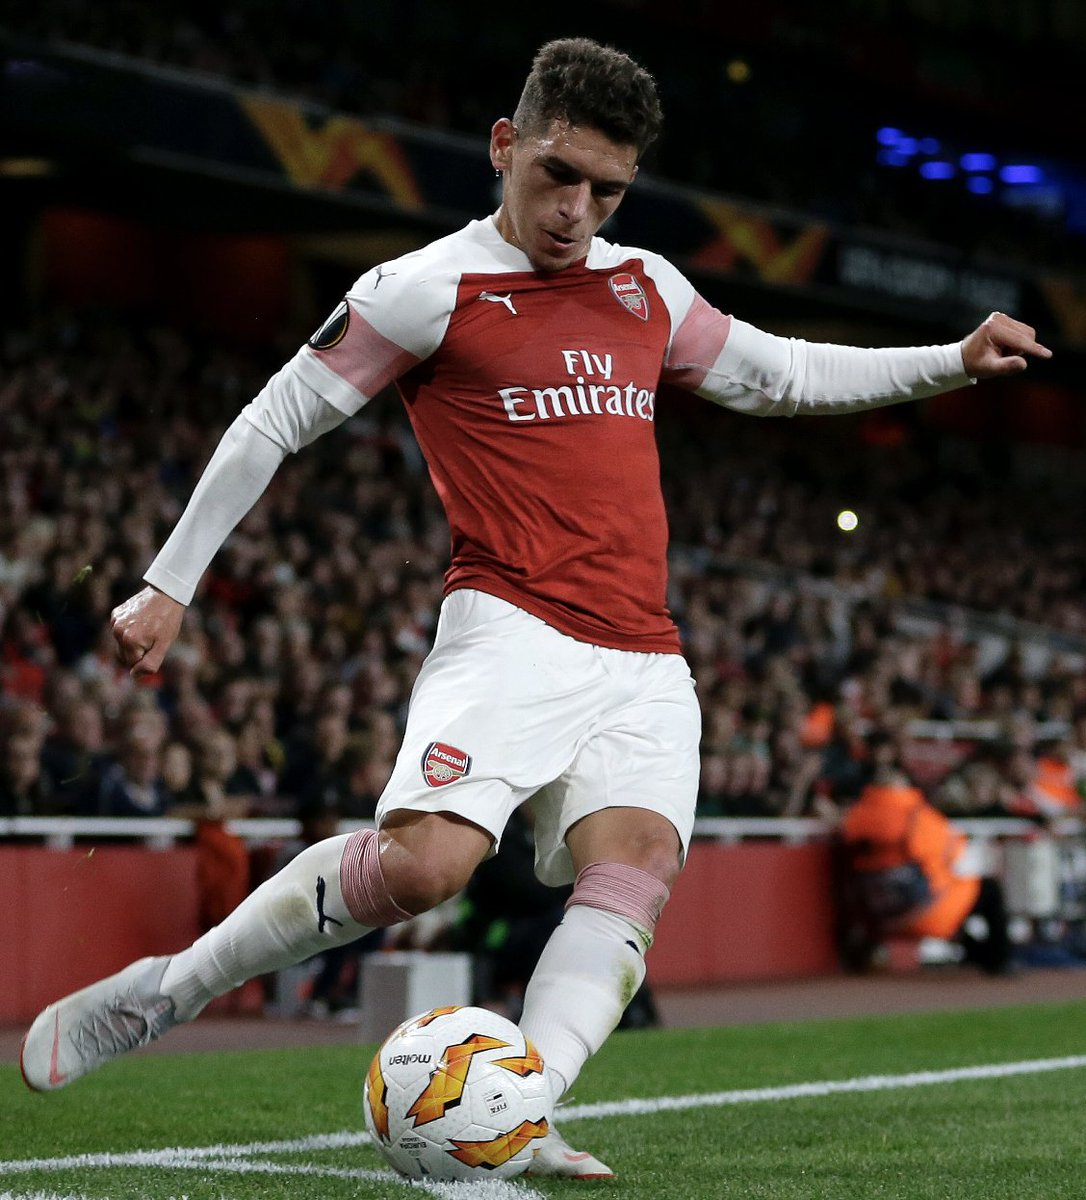 Unai Emery gives injury update on Lucas Torreira ahead of Everton clash